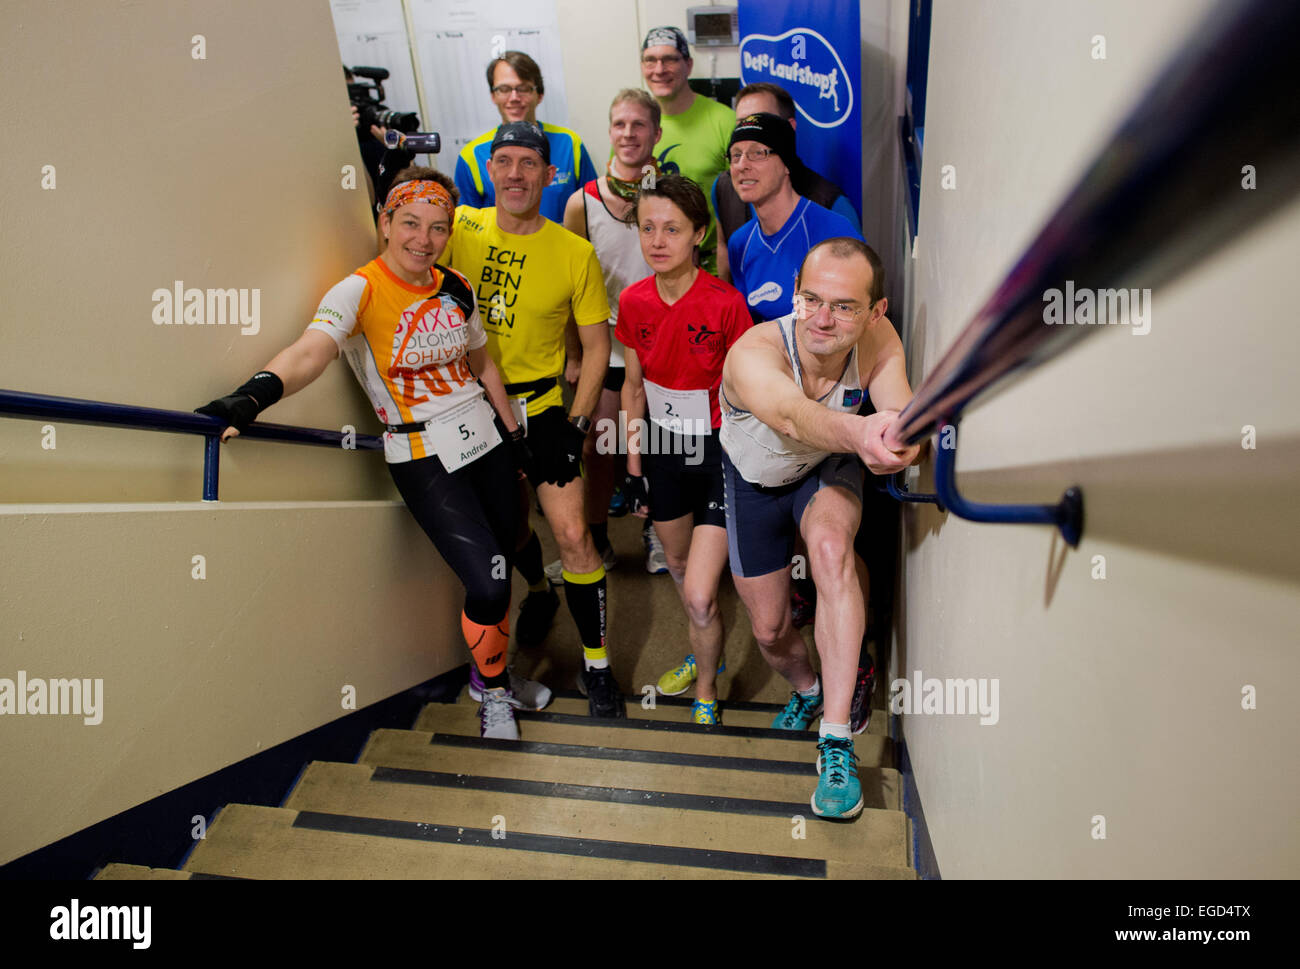 Participants run up a flight of stairs during the  staircase marathon in Hanover, Germany, 21 February 2015. According - Stock Image